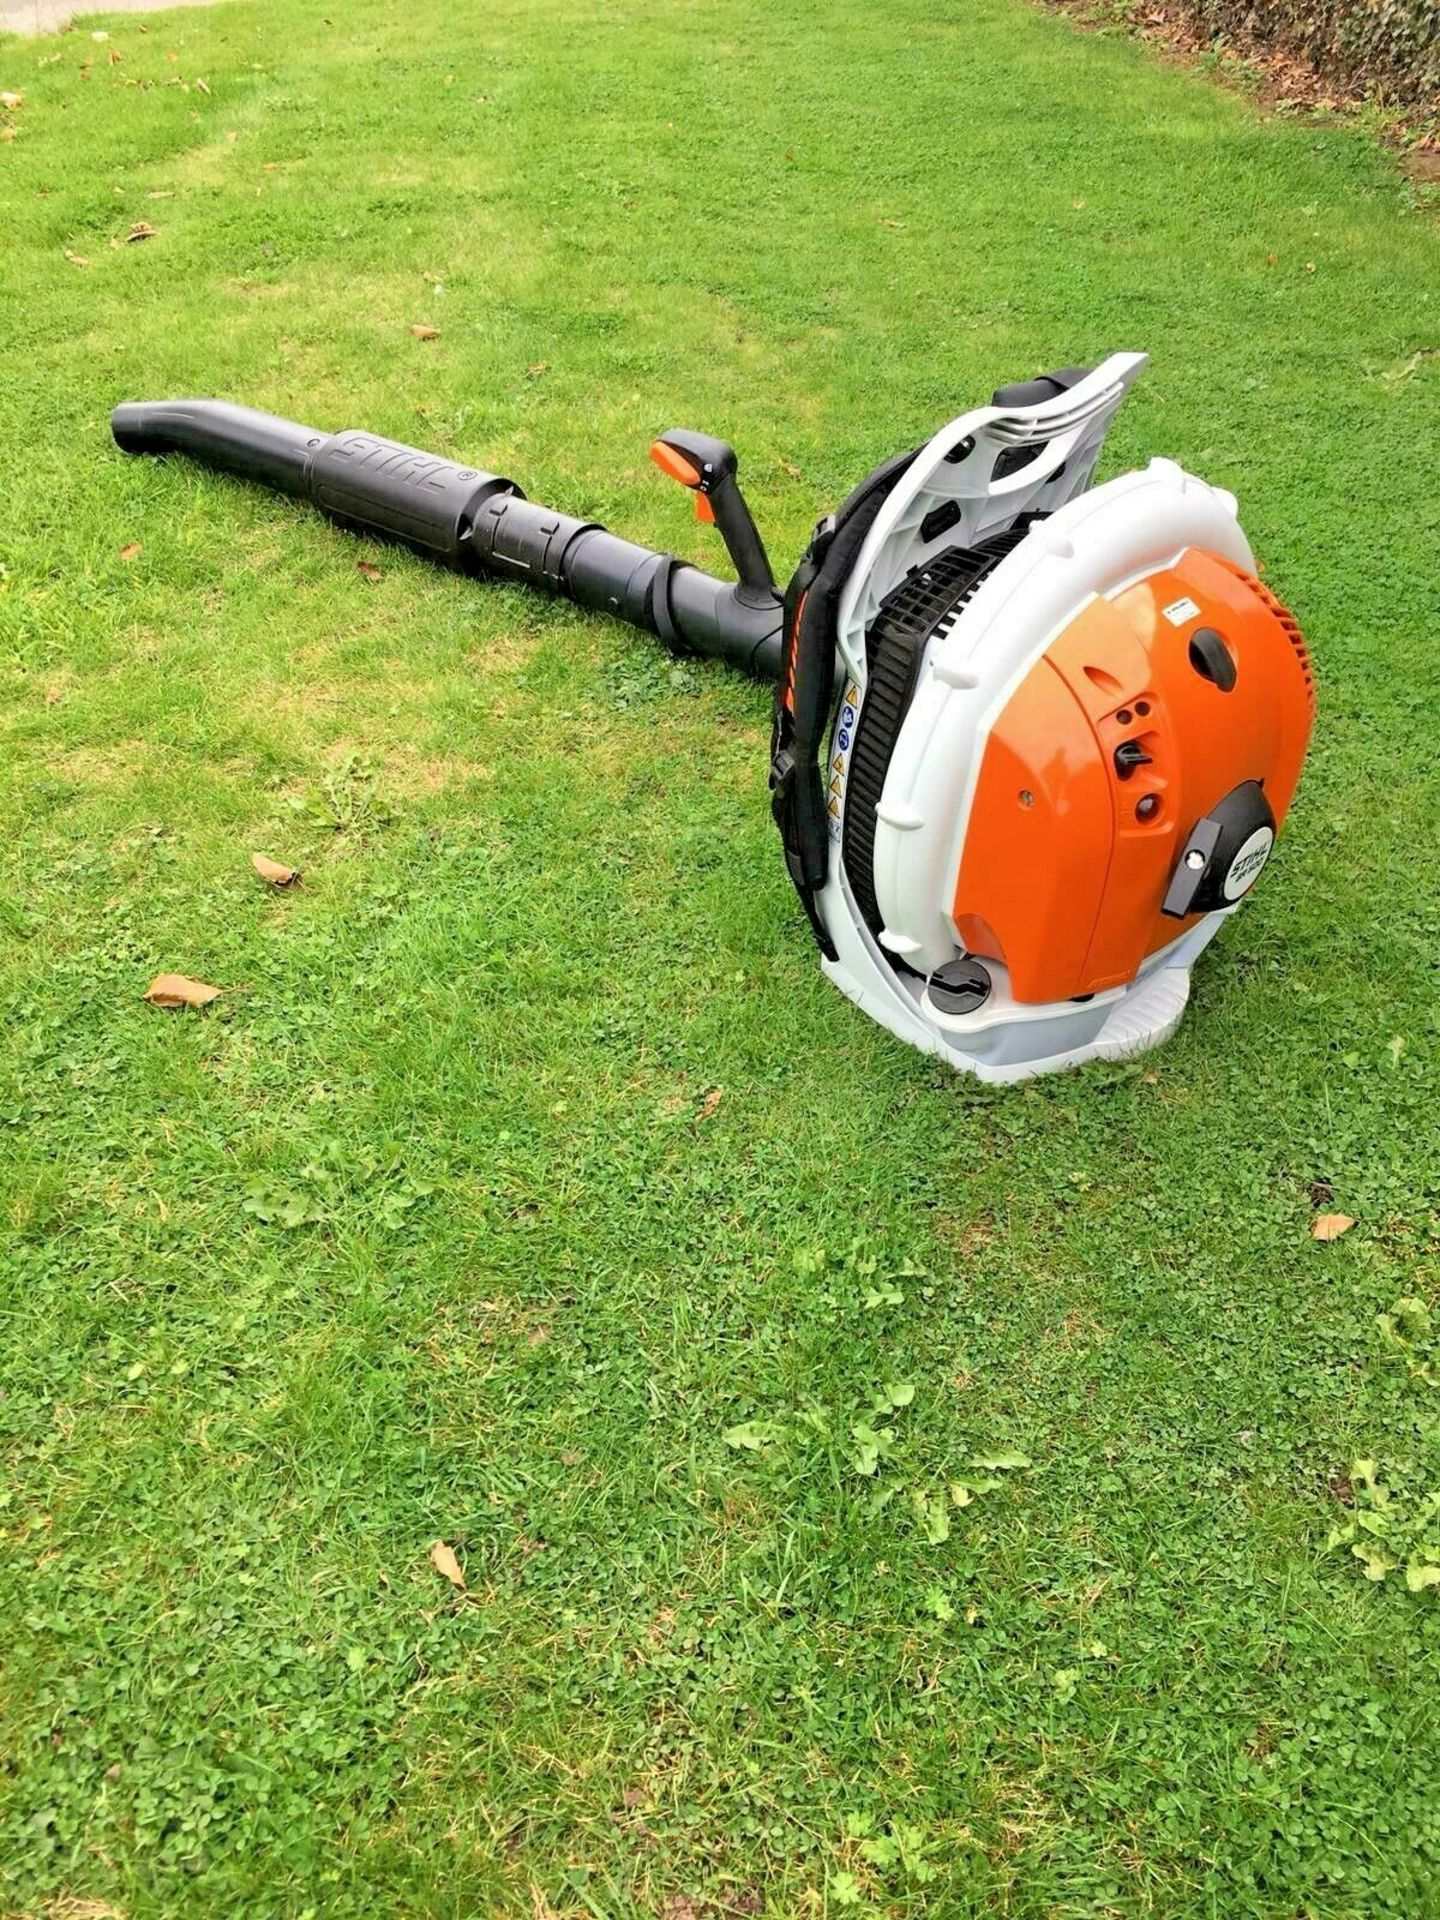 STIHL BACK PACK LEAF BLOWER, MODEL: BR500, MANUFACTURED 07/2017, NEVER USED, CHOICE OF 2 *PLUS VAT* - Image 6 of 7